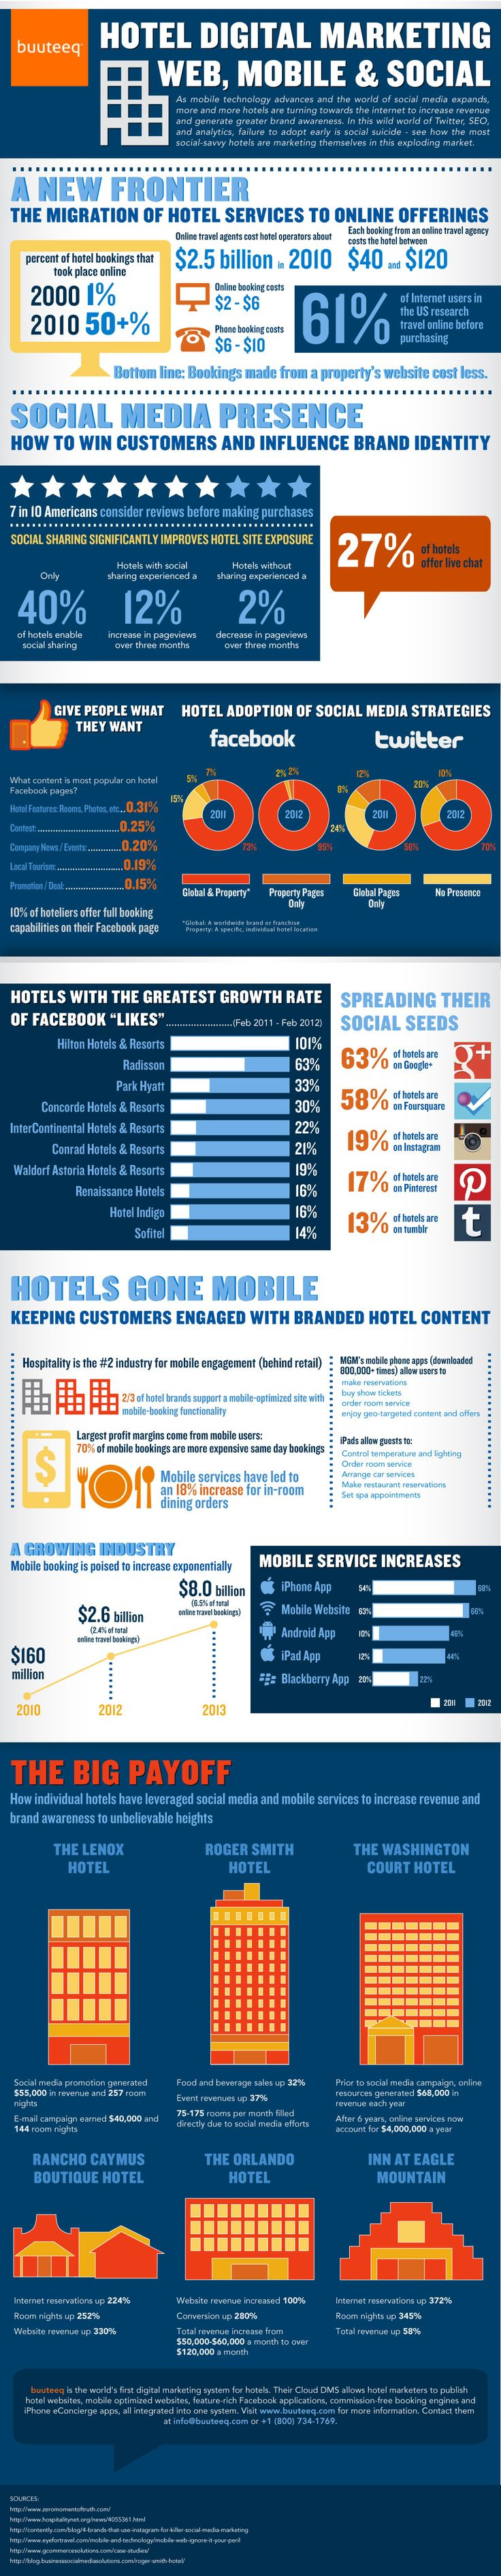 Hotel Digital Marketing: Web, Mobile & Social by buuteeq and Killer Infographics